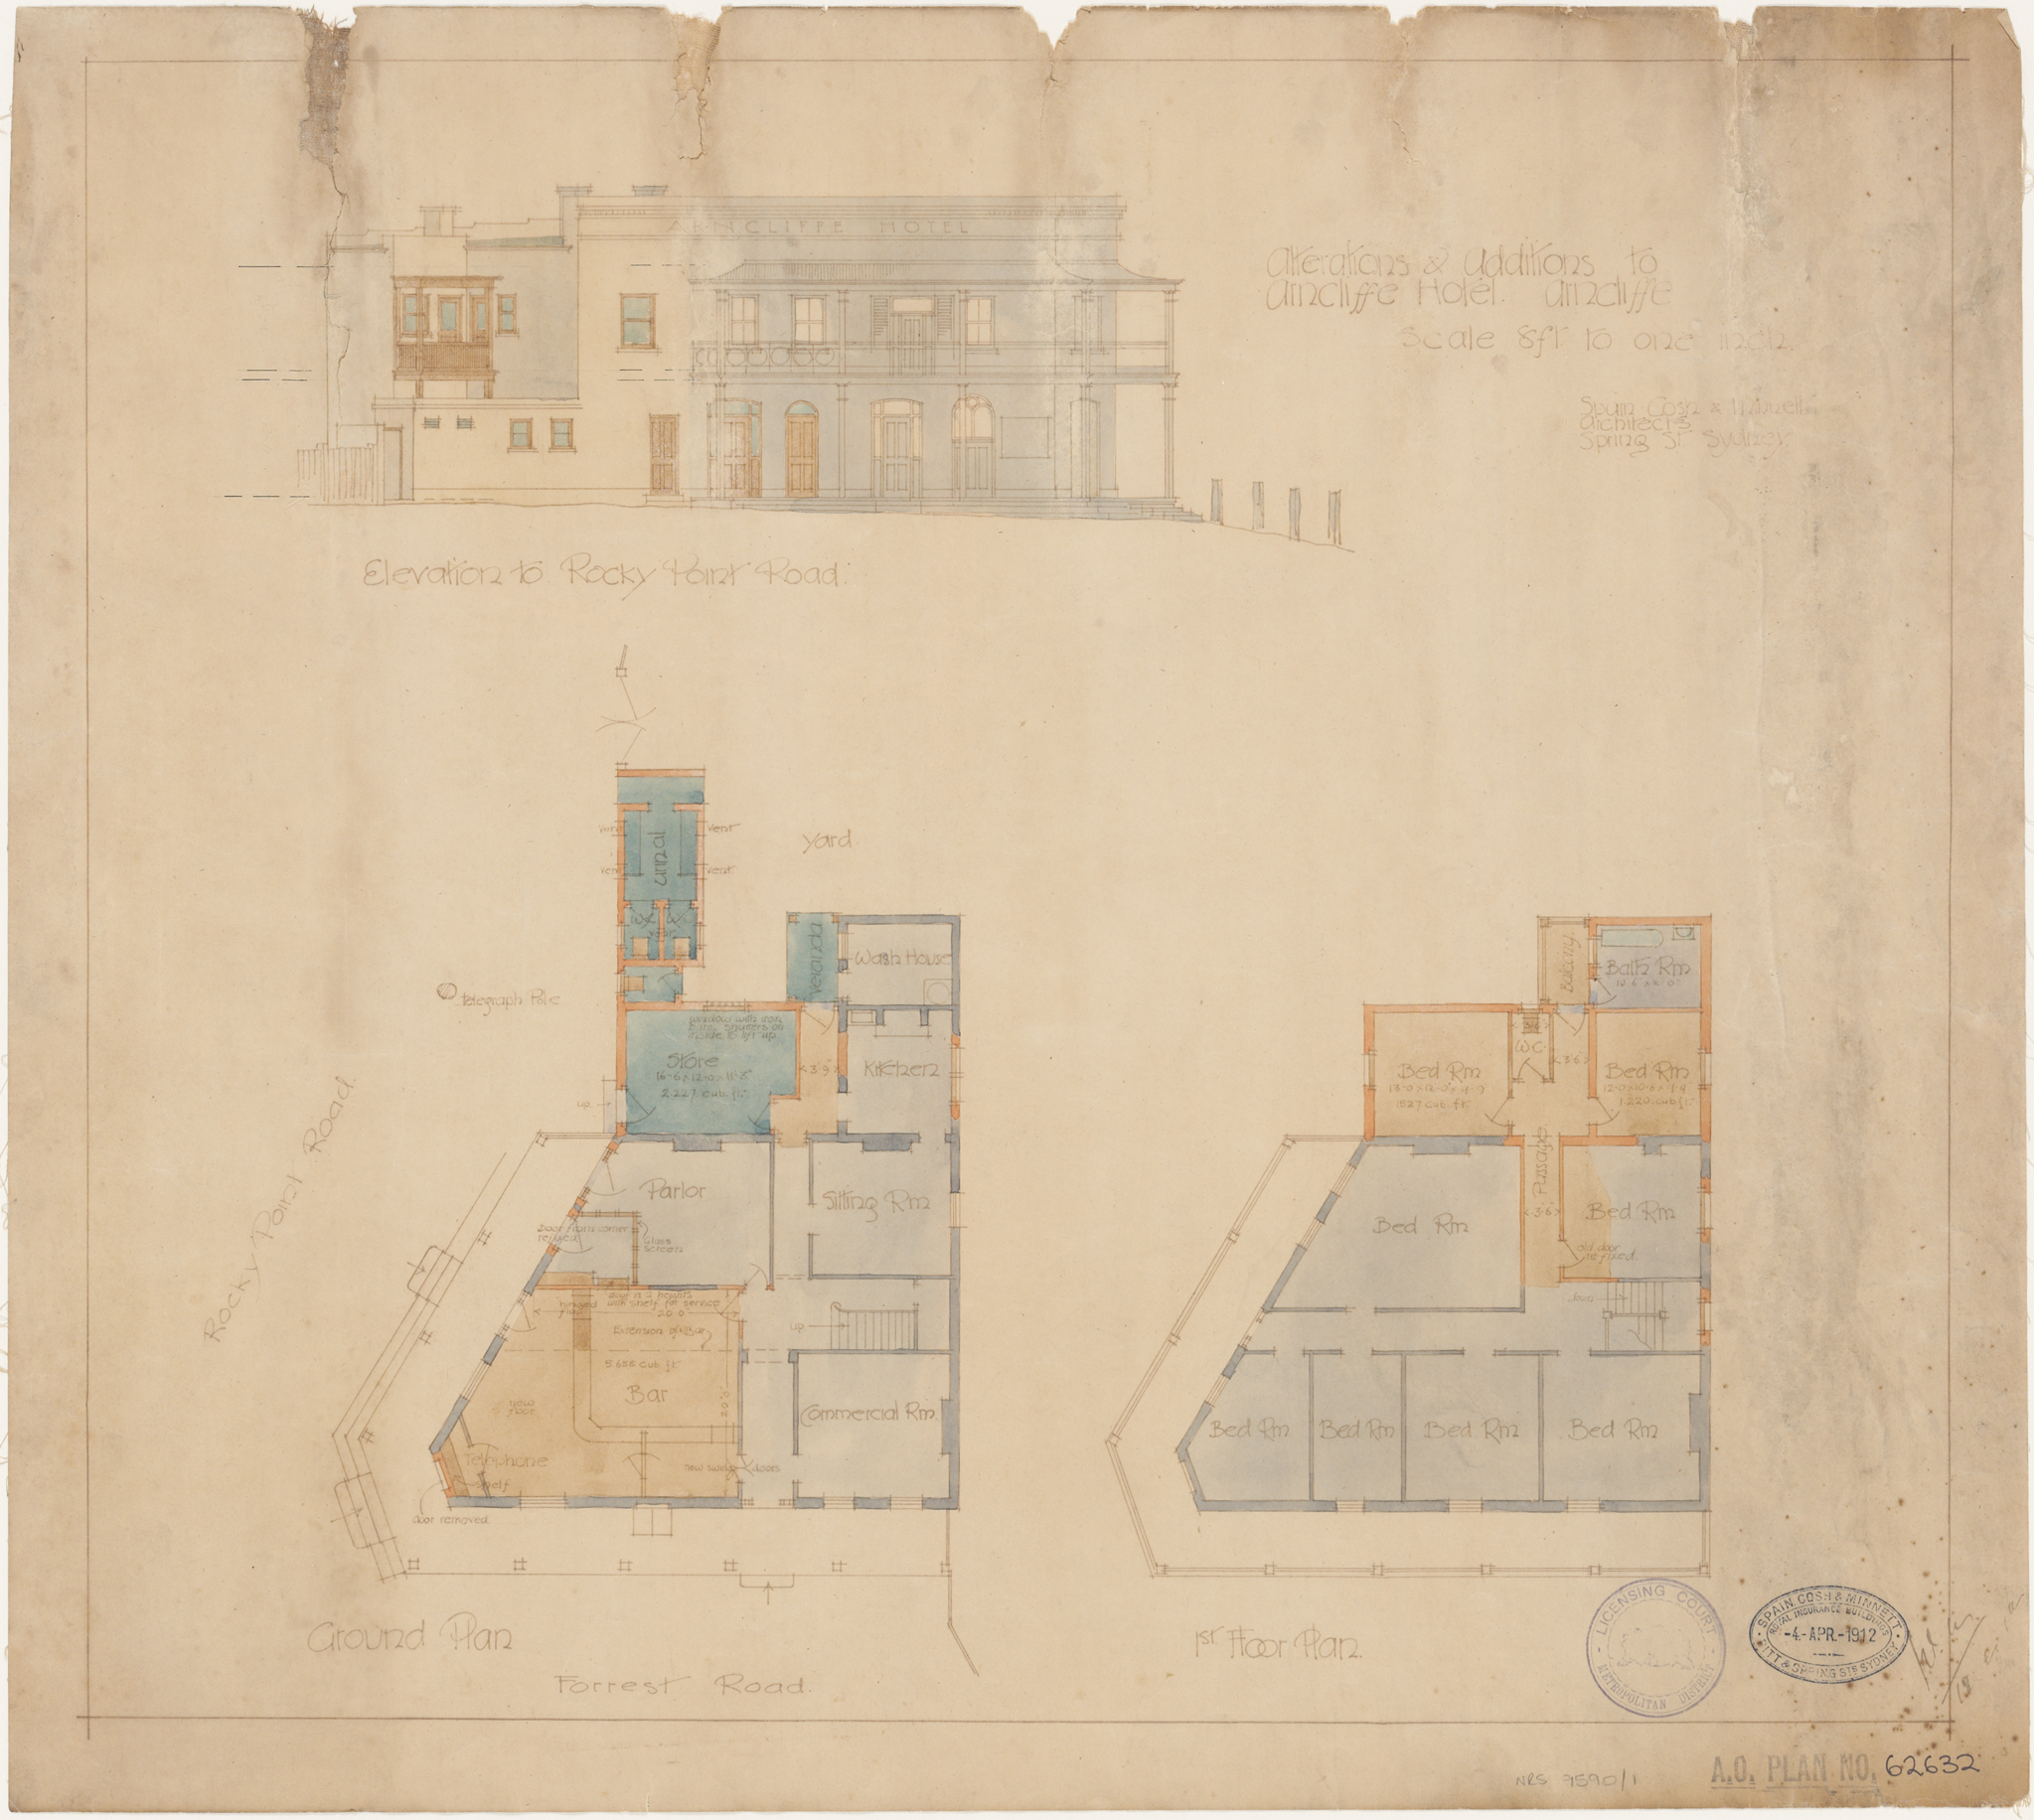 Arncliffe Hotel, Rocky Point and Forrest Roads, Arncliffe, Alterations and additions, ground and first floor plans and elevation to Rock Point Road, Architect Spain, Cosh and Minnett, Spring Street, Sydney, Signed 18 December 1912